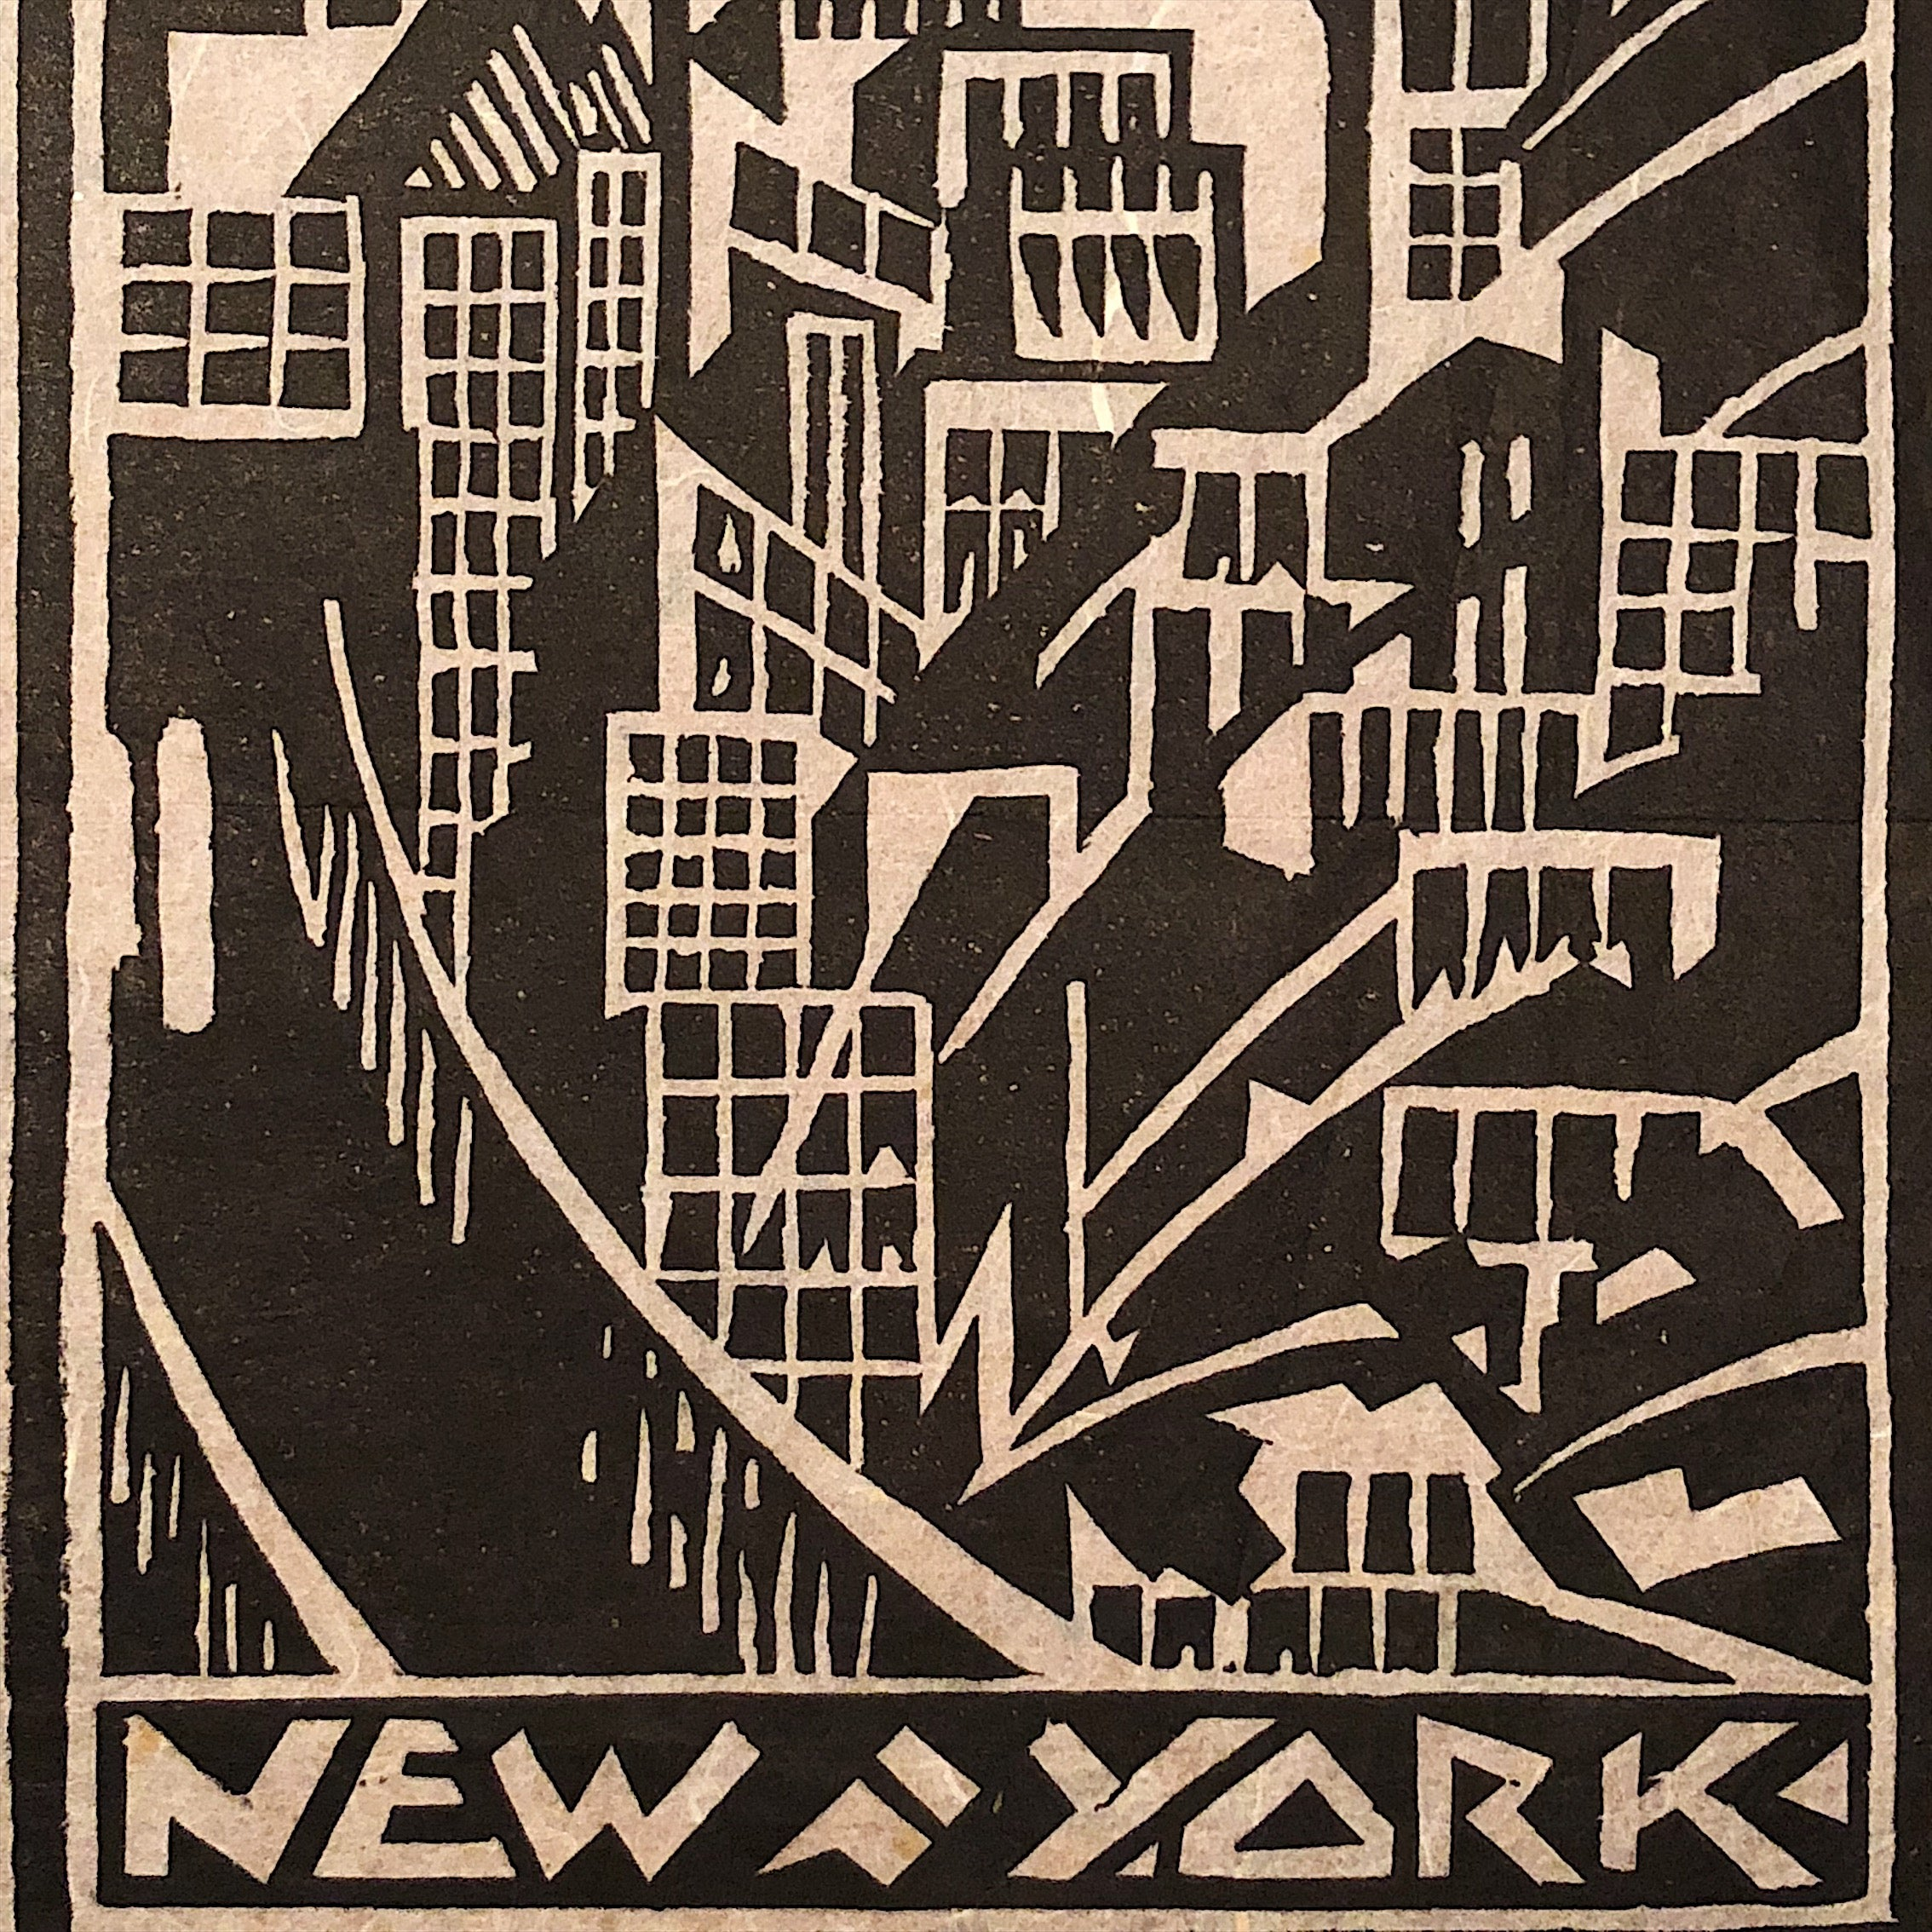 Vintage Art Deco Woodblock of New York City